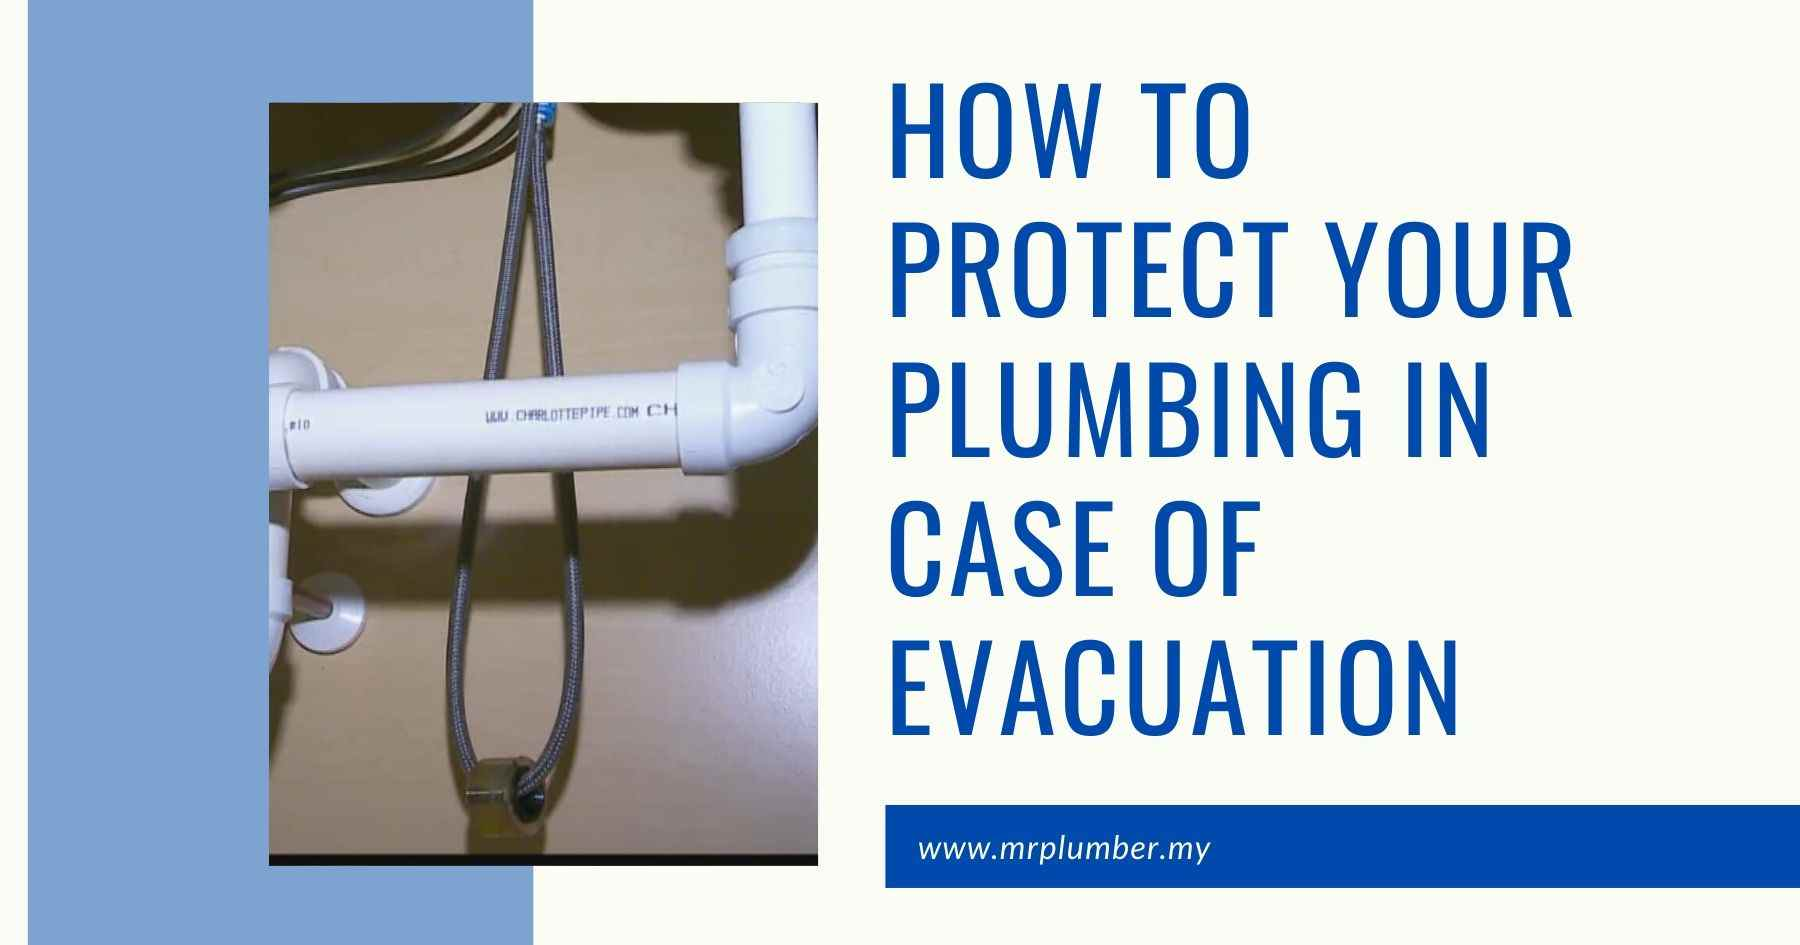 How to Protect Your Plumbing